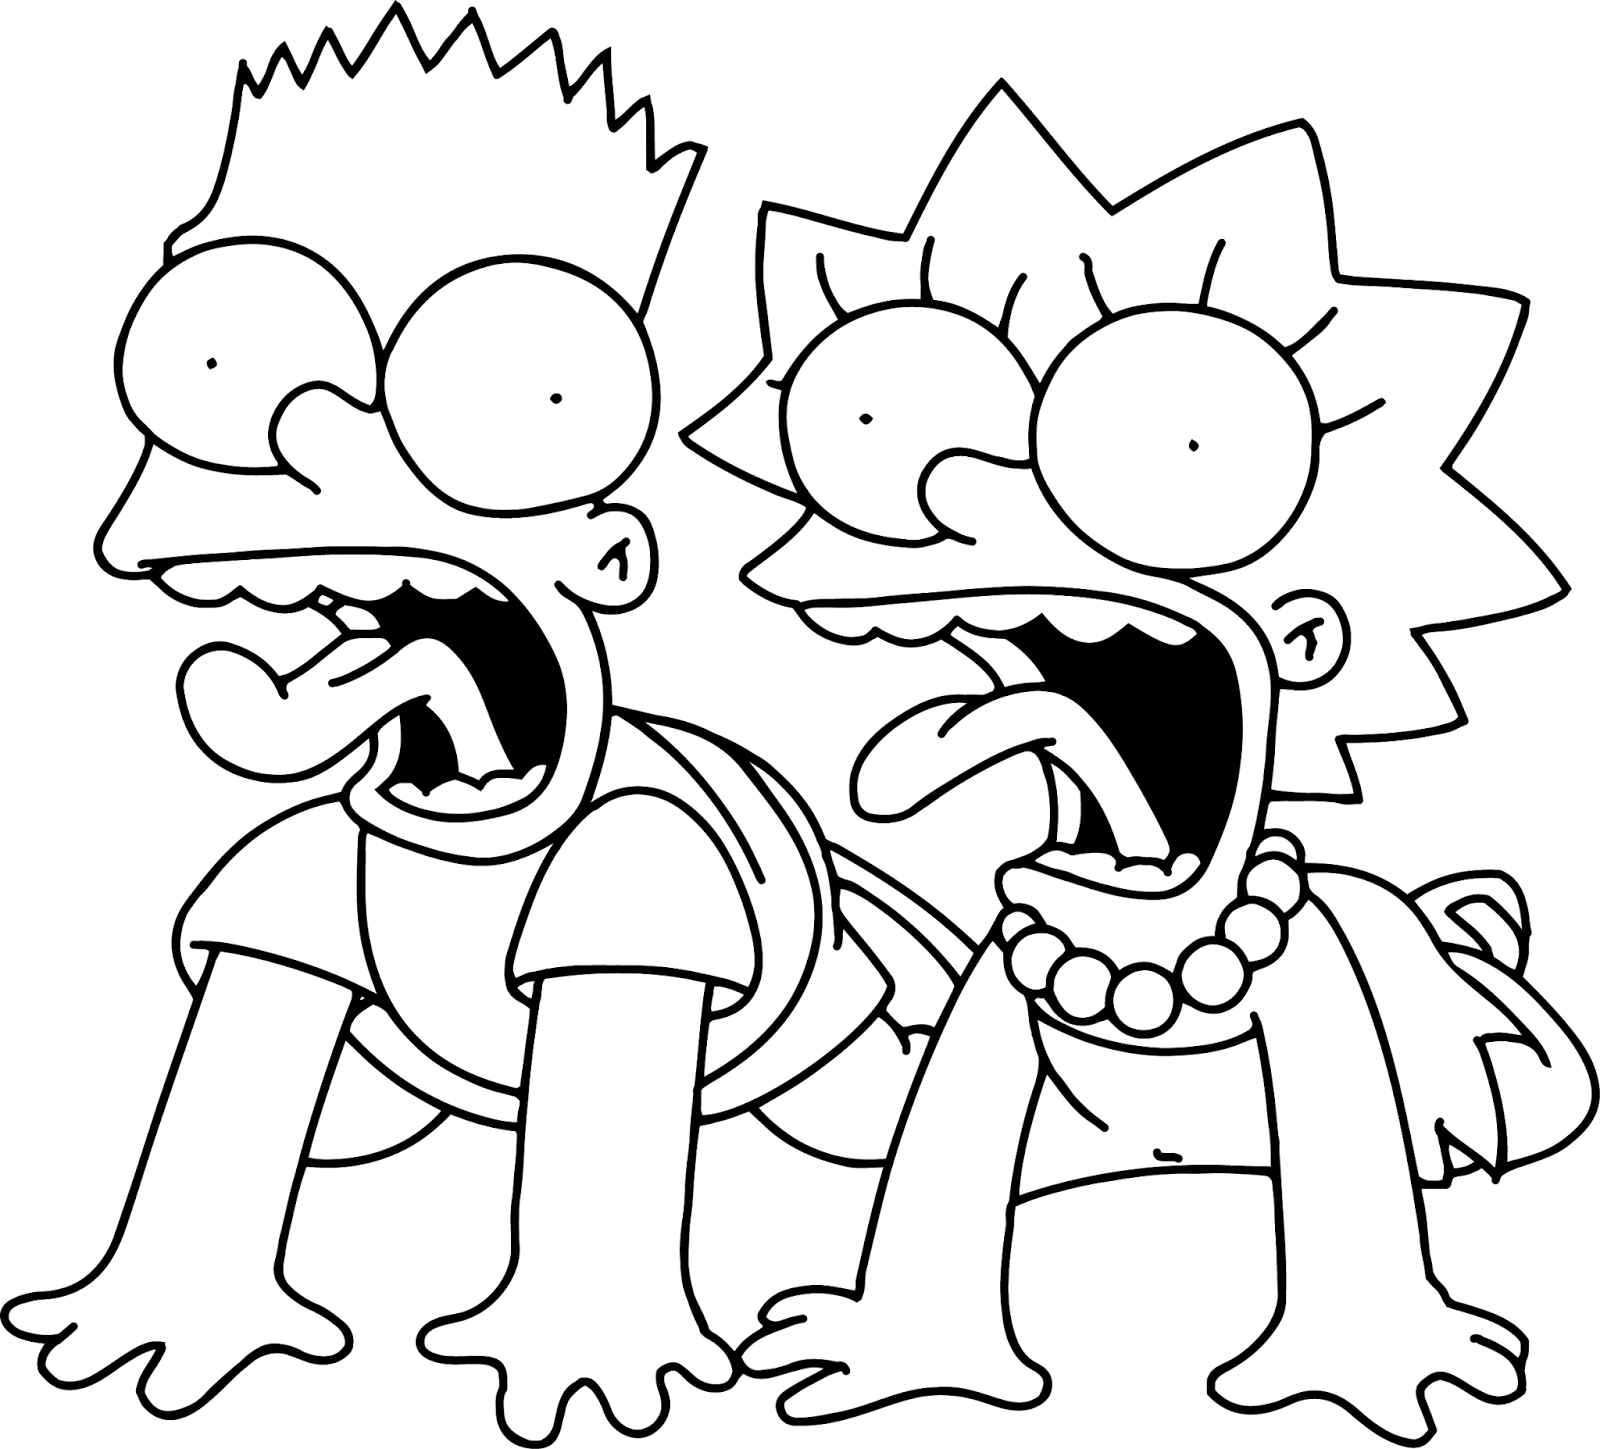 Free Simpsons Coloring Pages for Kids